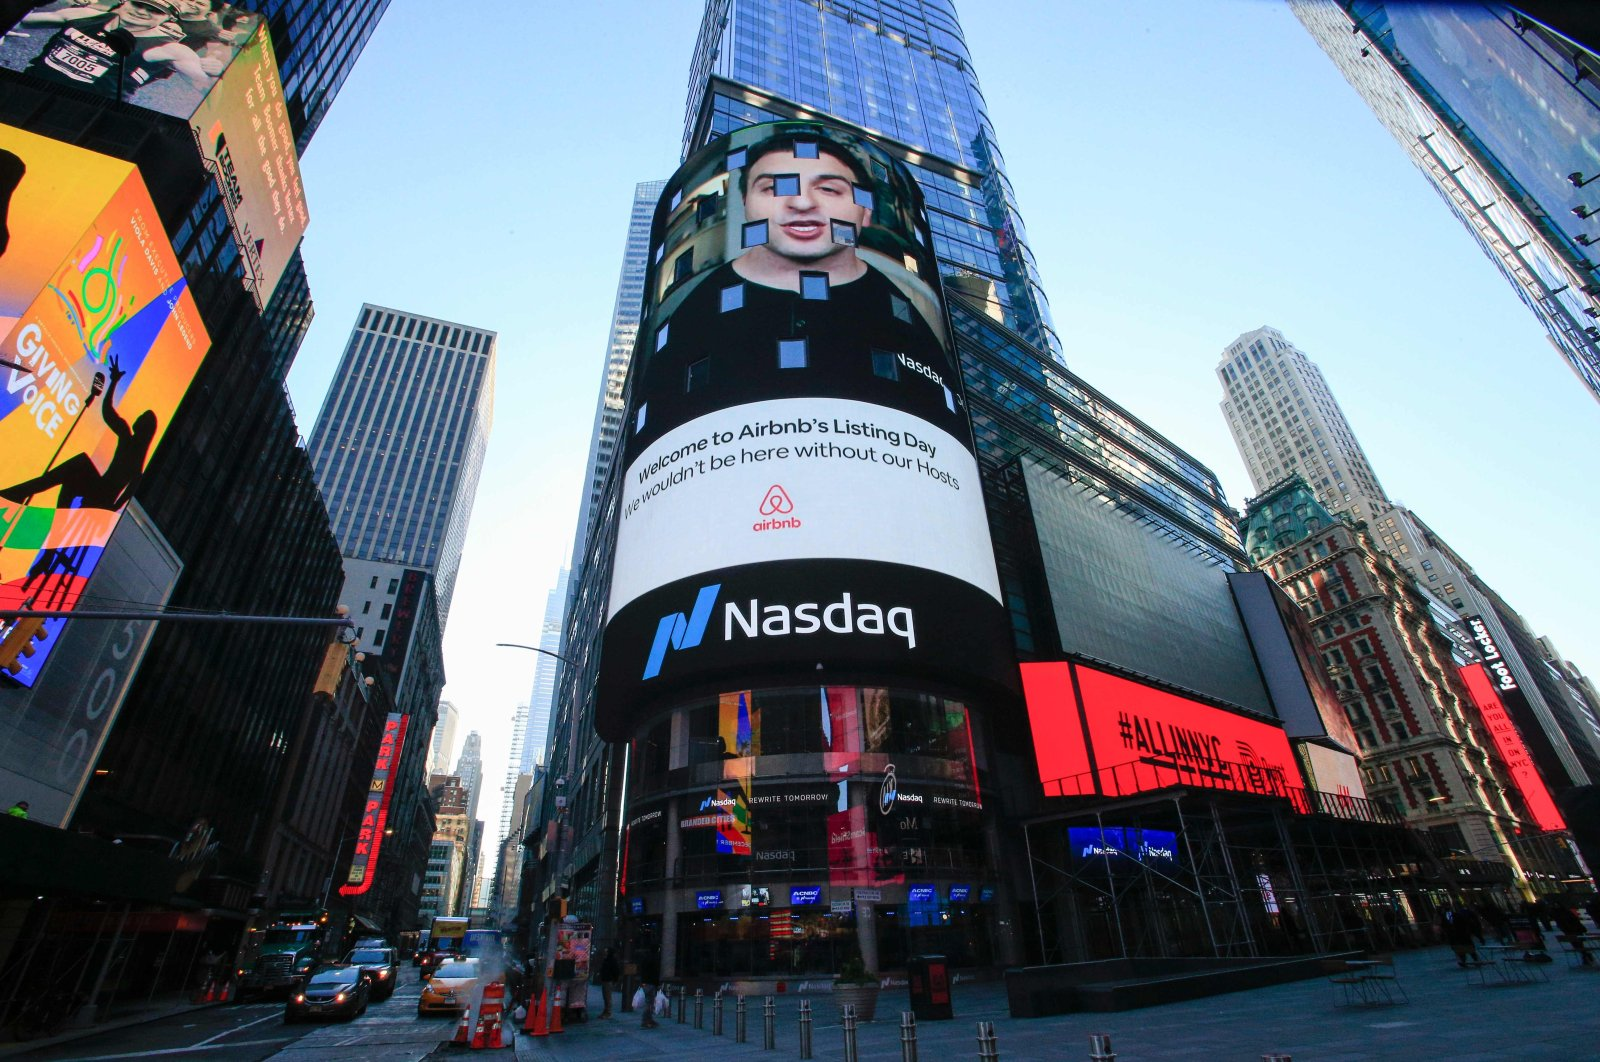 The Airbnb logo is displayed on the Nasdaq digital billboard in Times Square in New York, U.S., Dec. 10, 2020. (AFP Photo)